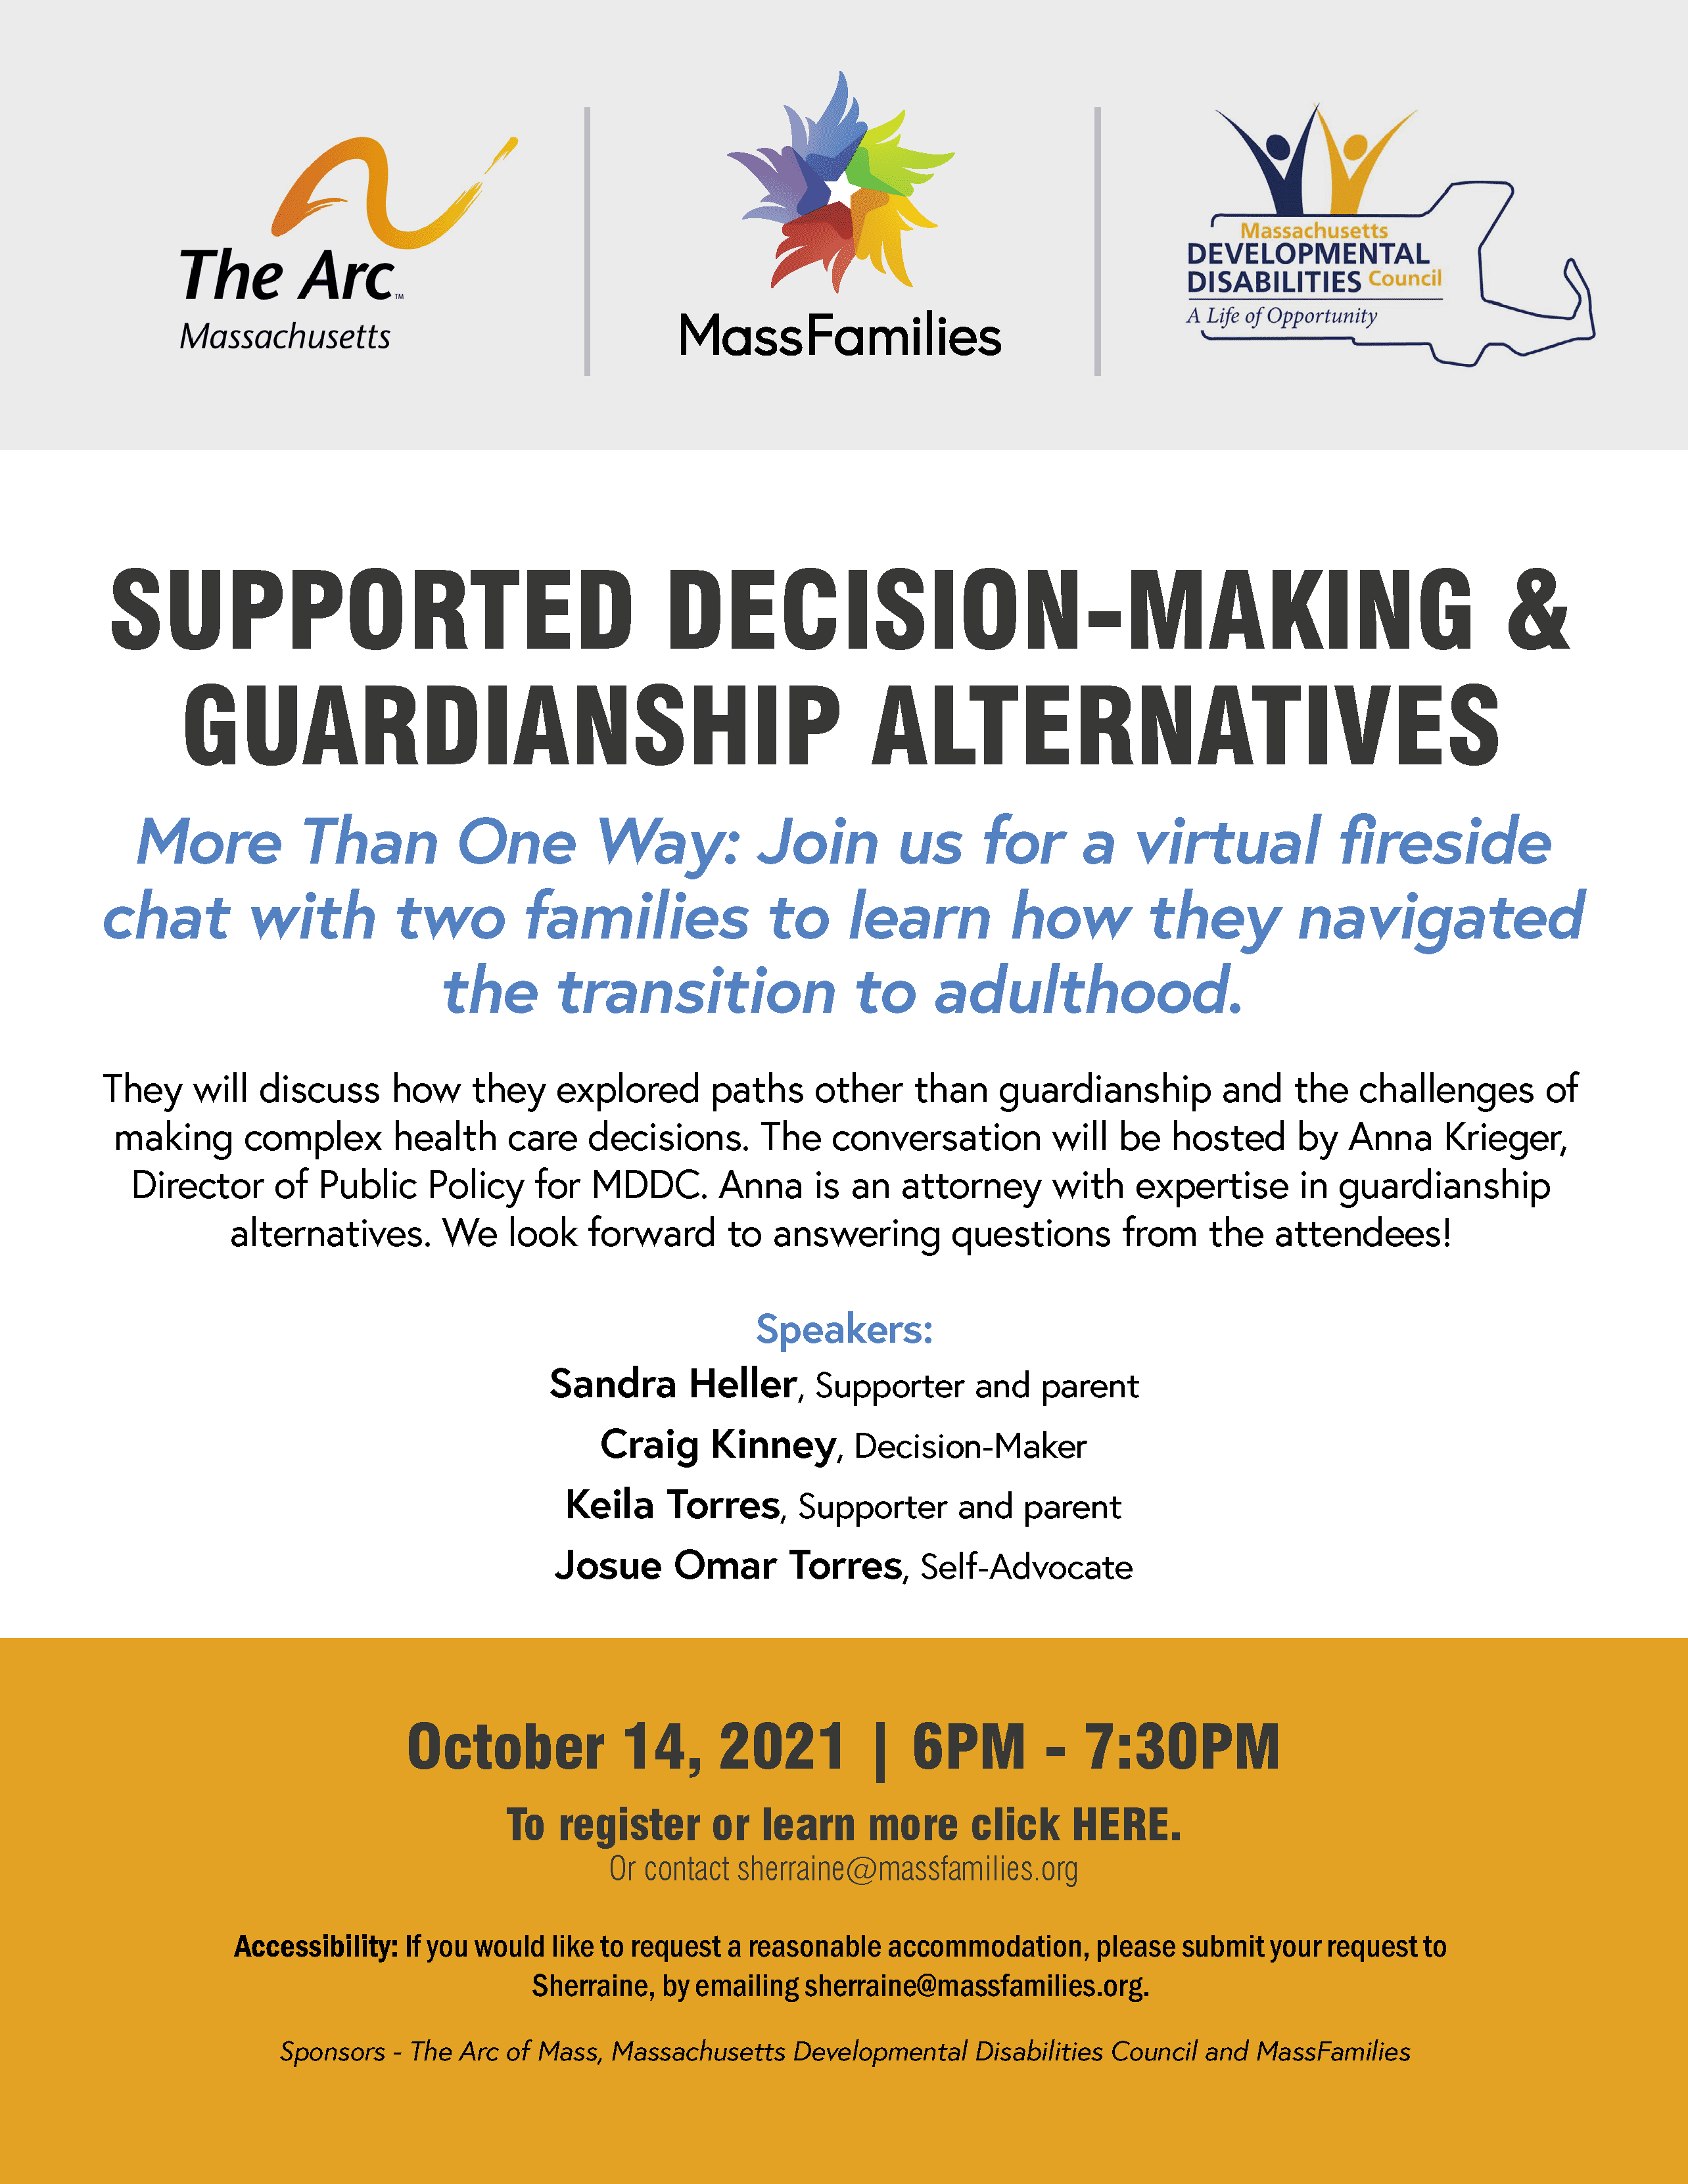 Supported Decision-Making and Guardianship Alternatives OCtober 14, 2021